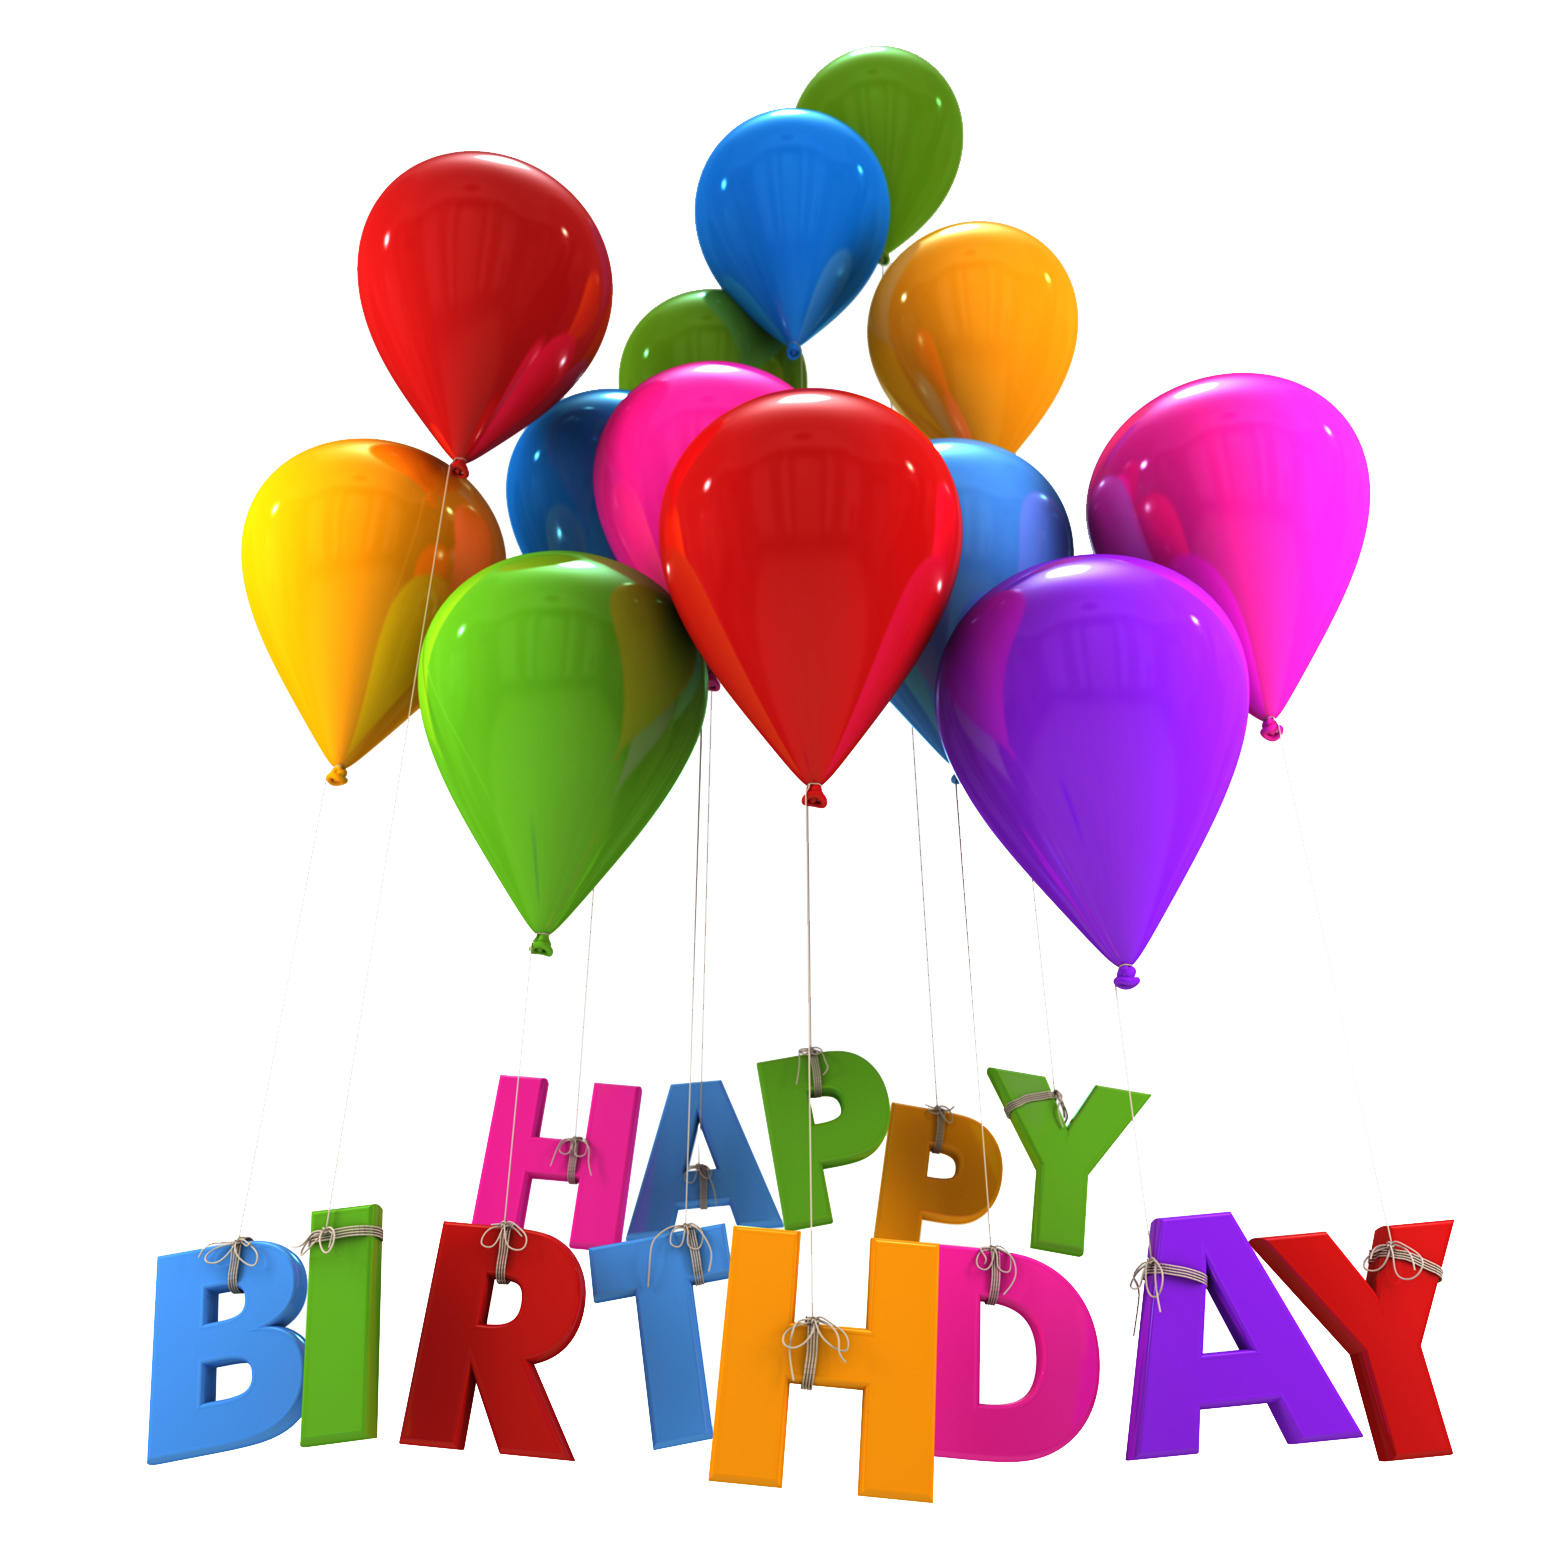 Happy free download. Birthday png images